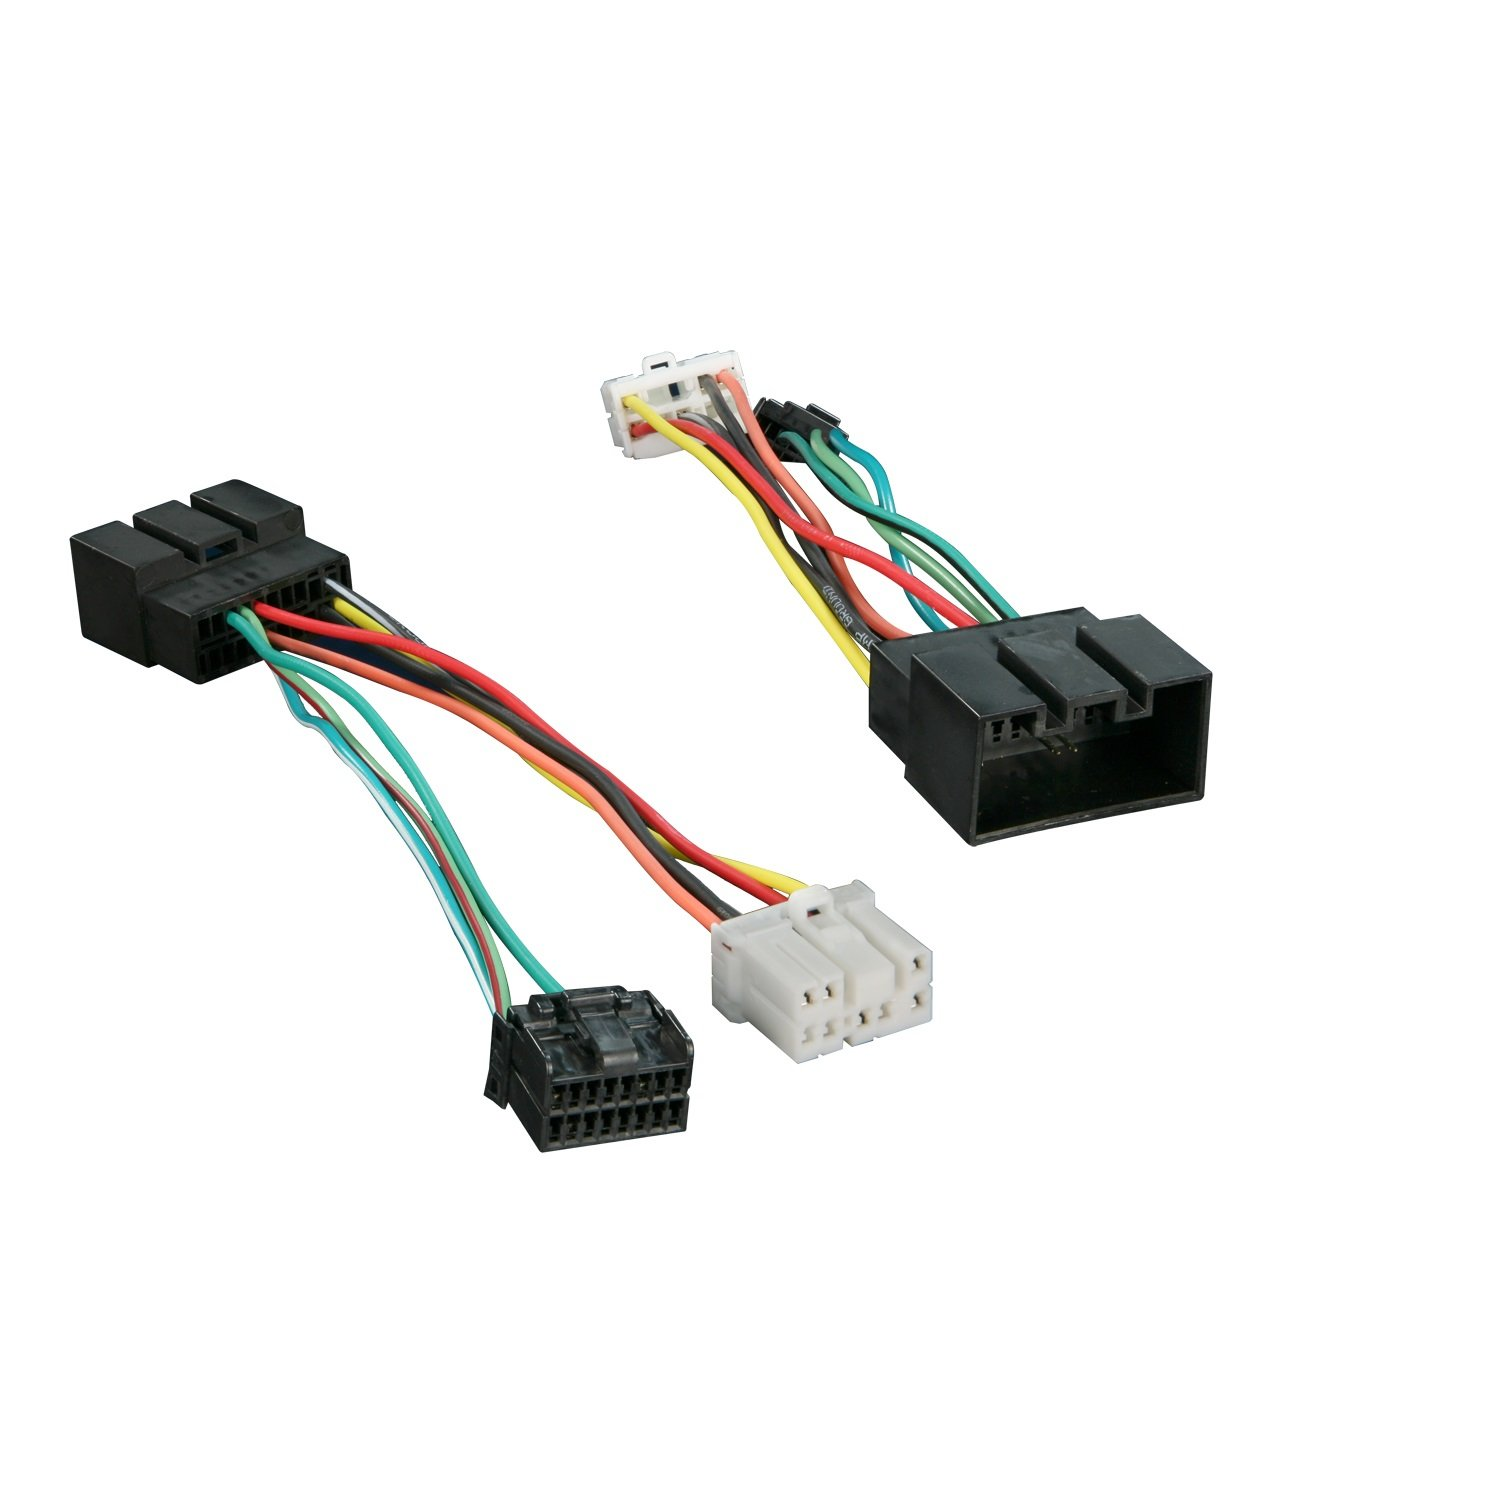 hight resolution of metra 70 5716 turbowire car stereo wiring harness walmart com radio wiring harnesses walmart